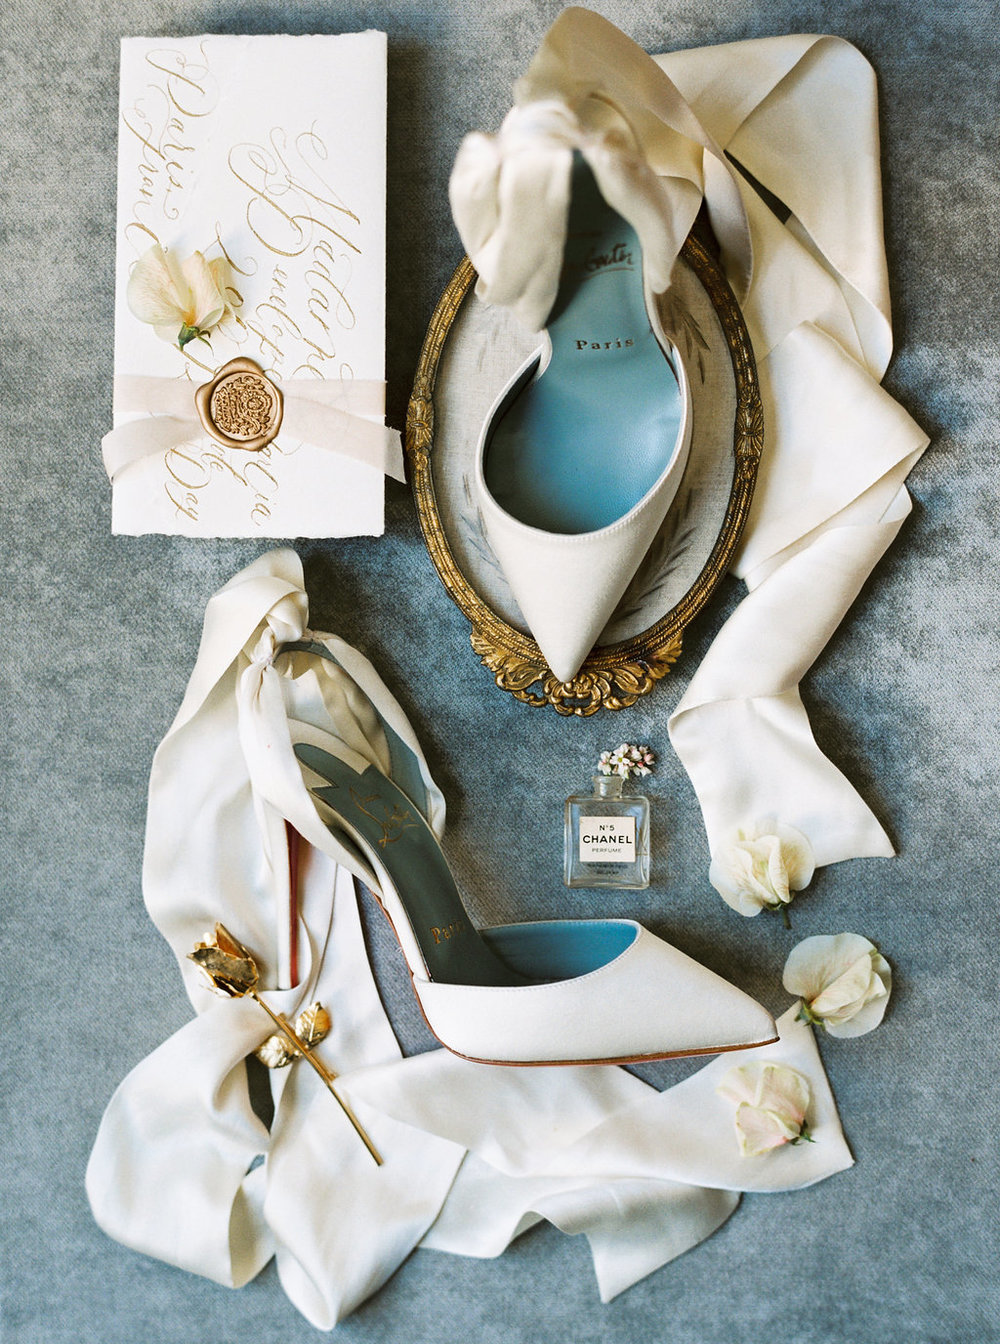 Christian Louboutin wedding shoes flatlay styling East Made Event Company.jpg